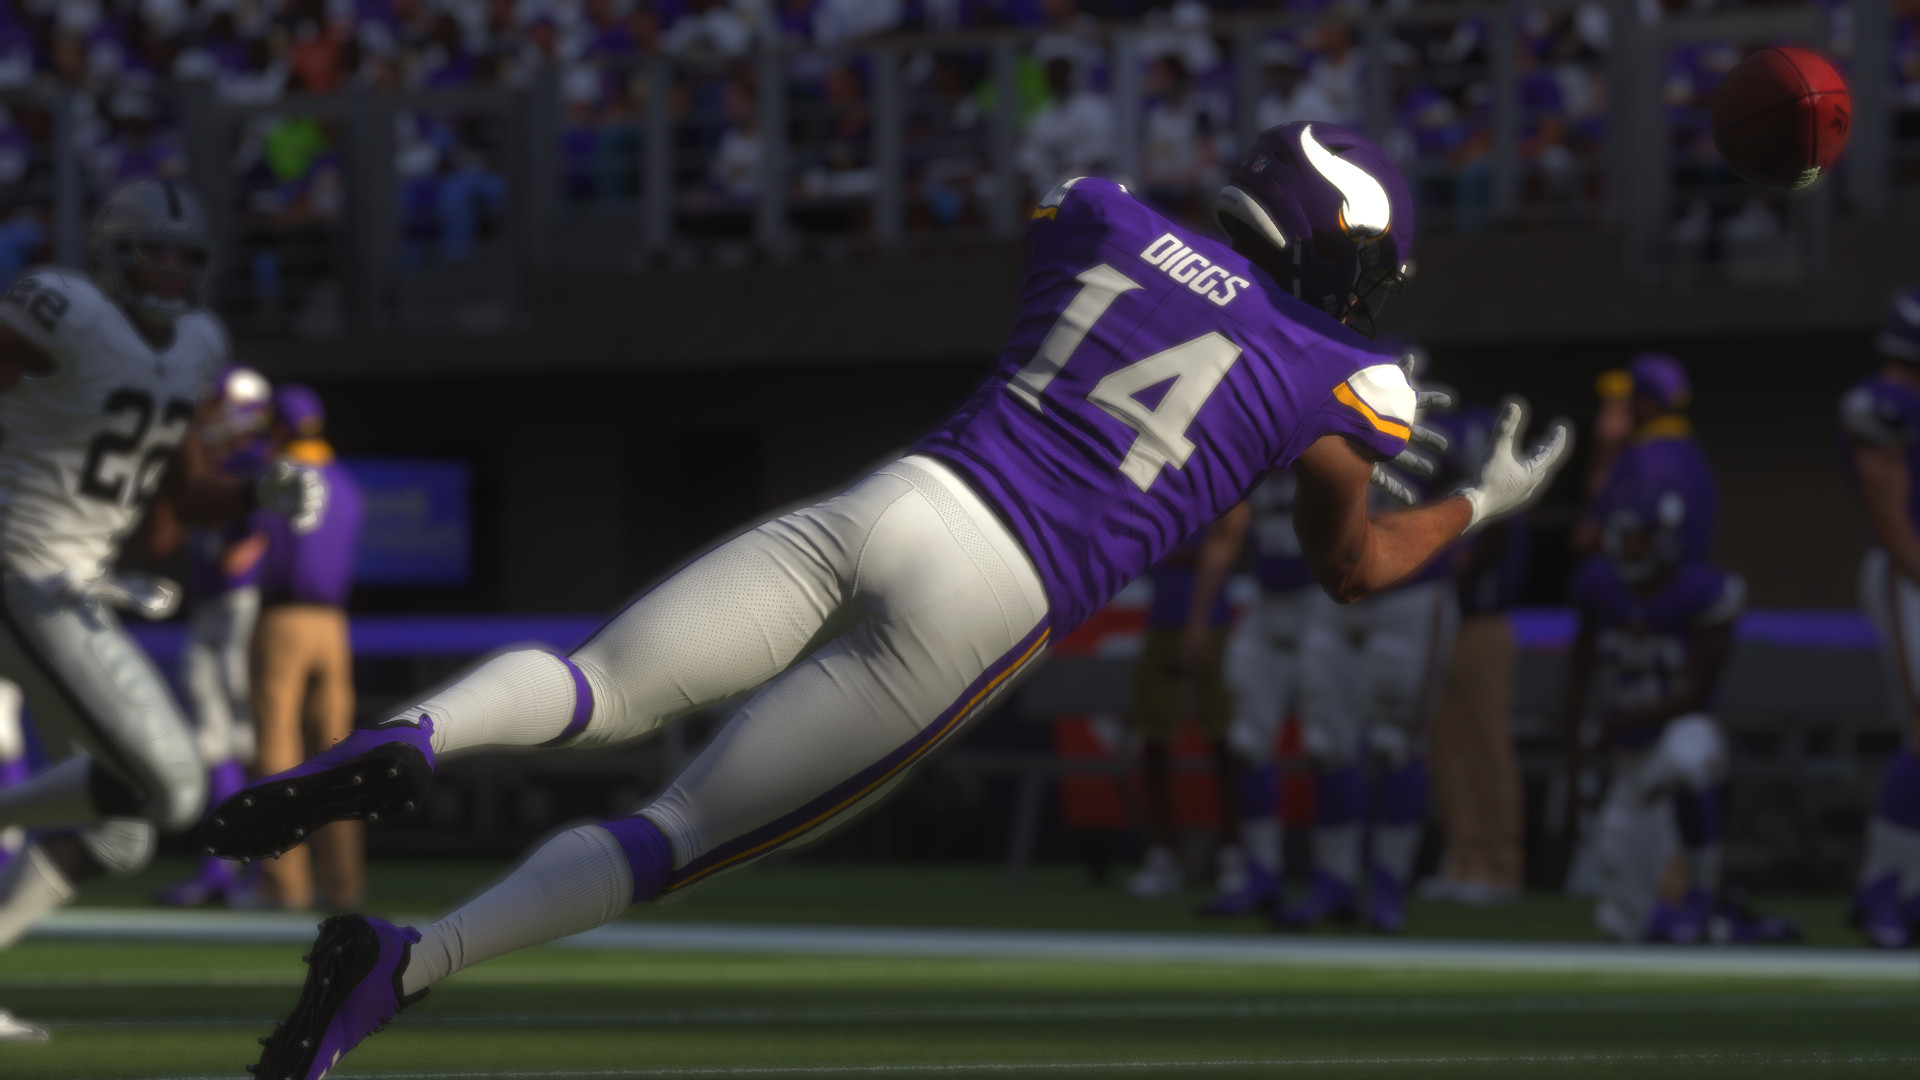 Madden NFL 19 Stefon Diggs